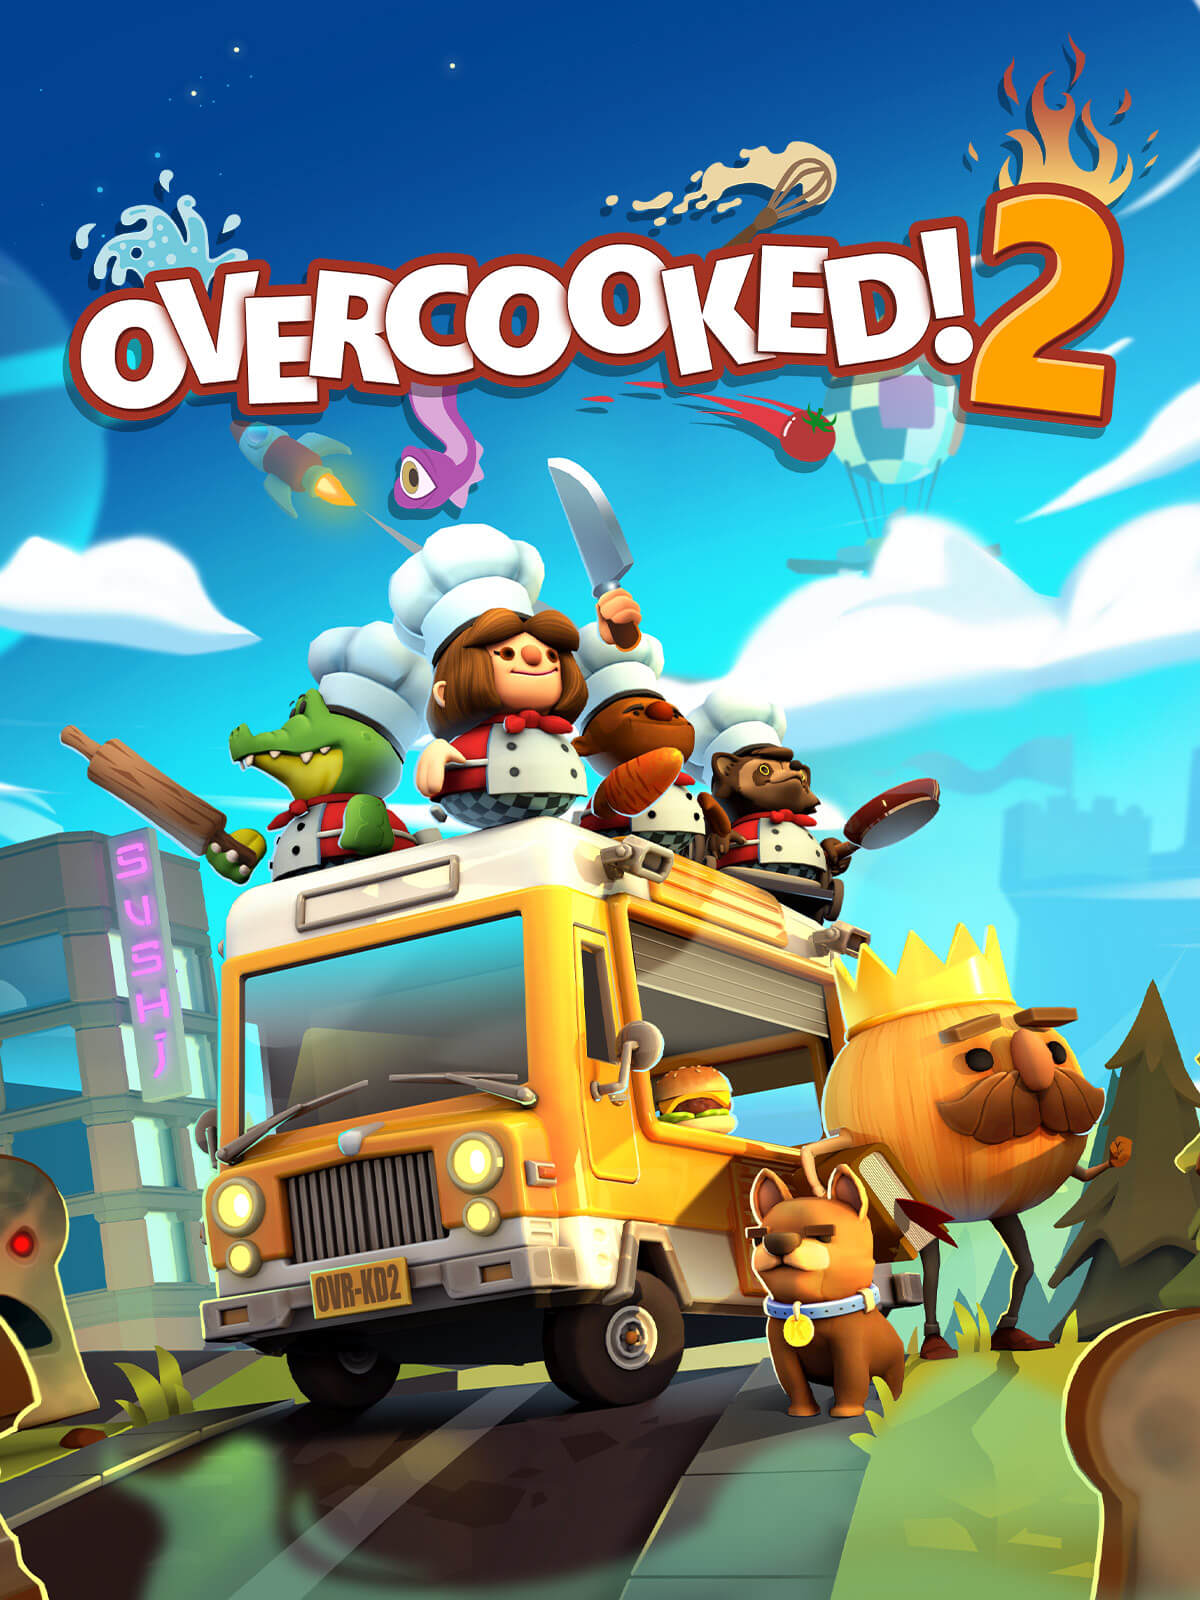 Epic Gamesで「Hell is Other Demons」「Overcooked!2」が無料配信中。~6/25。